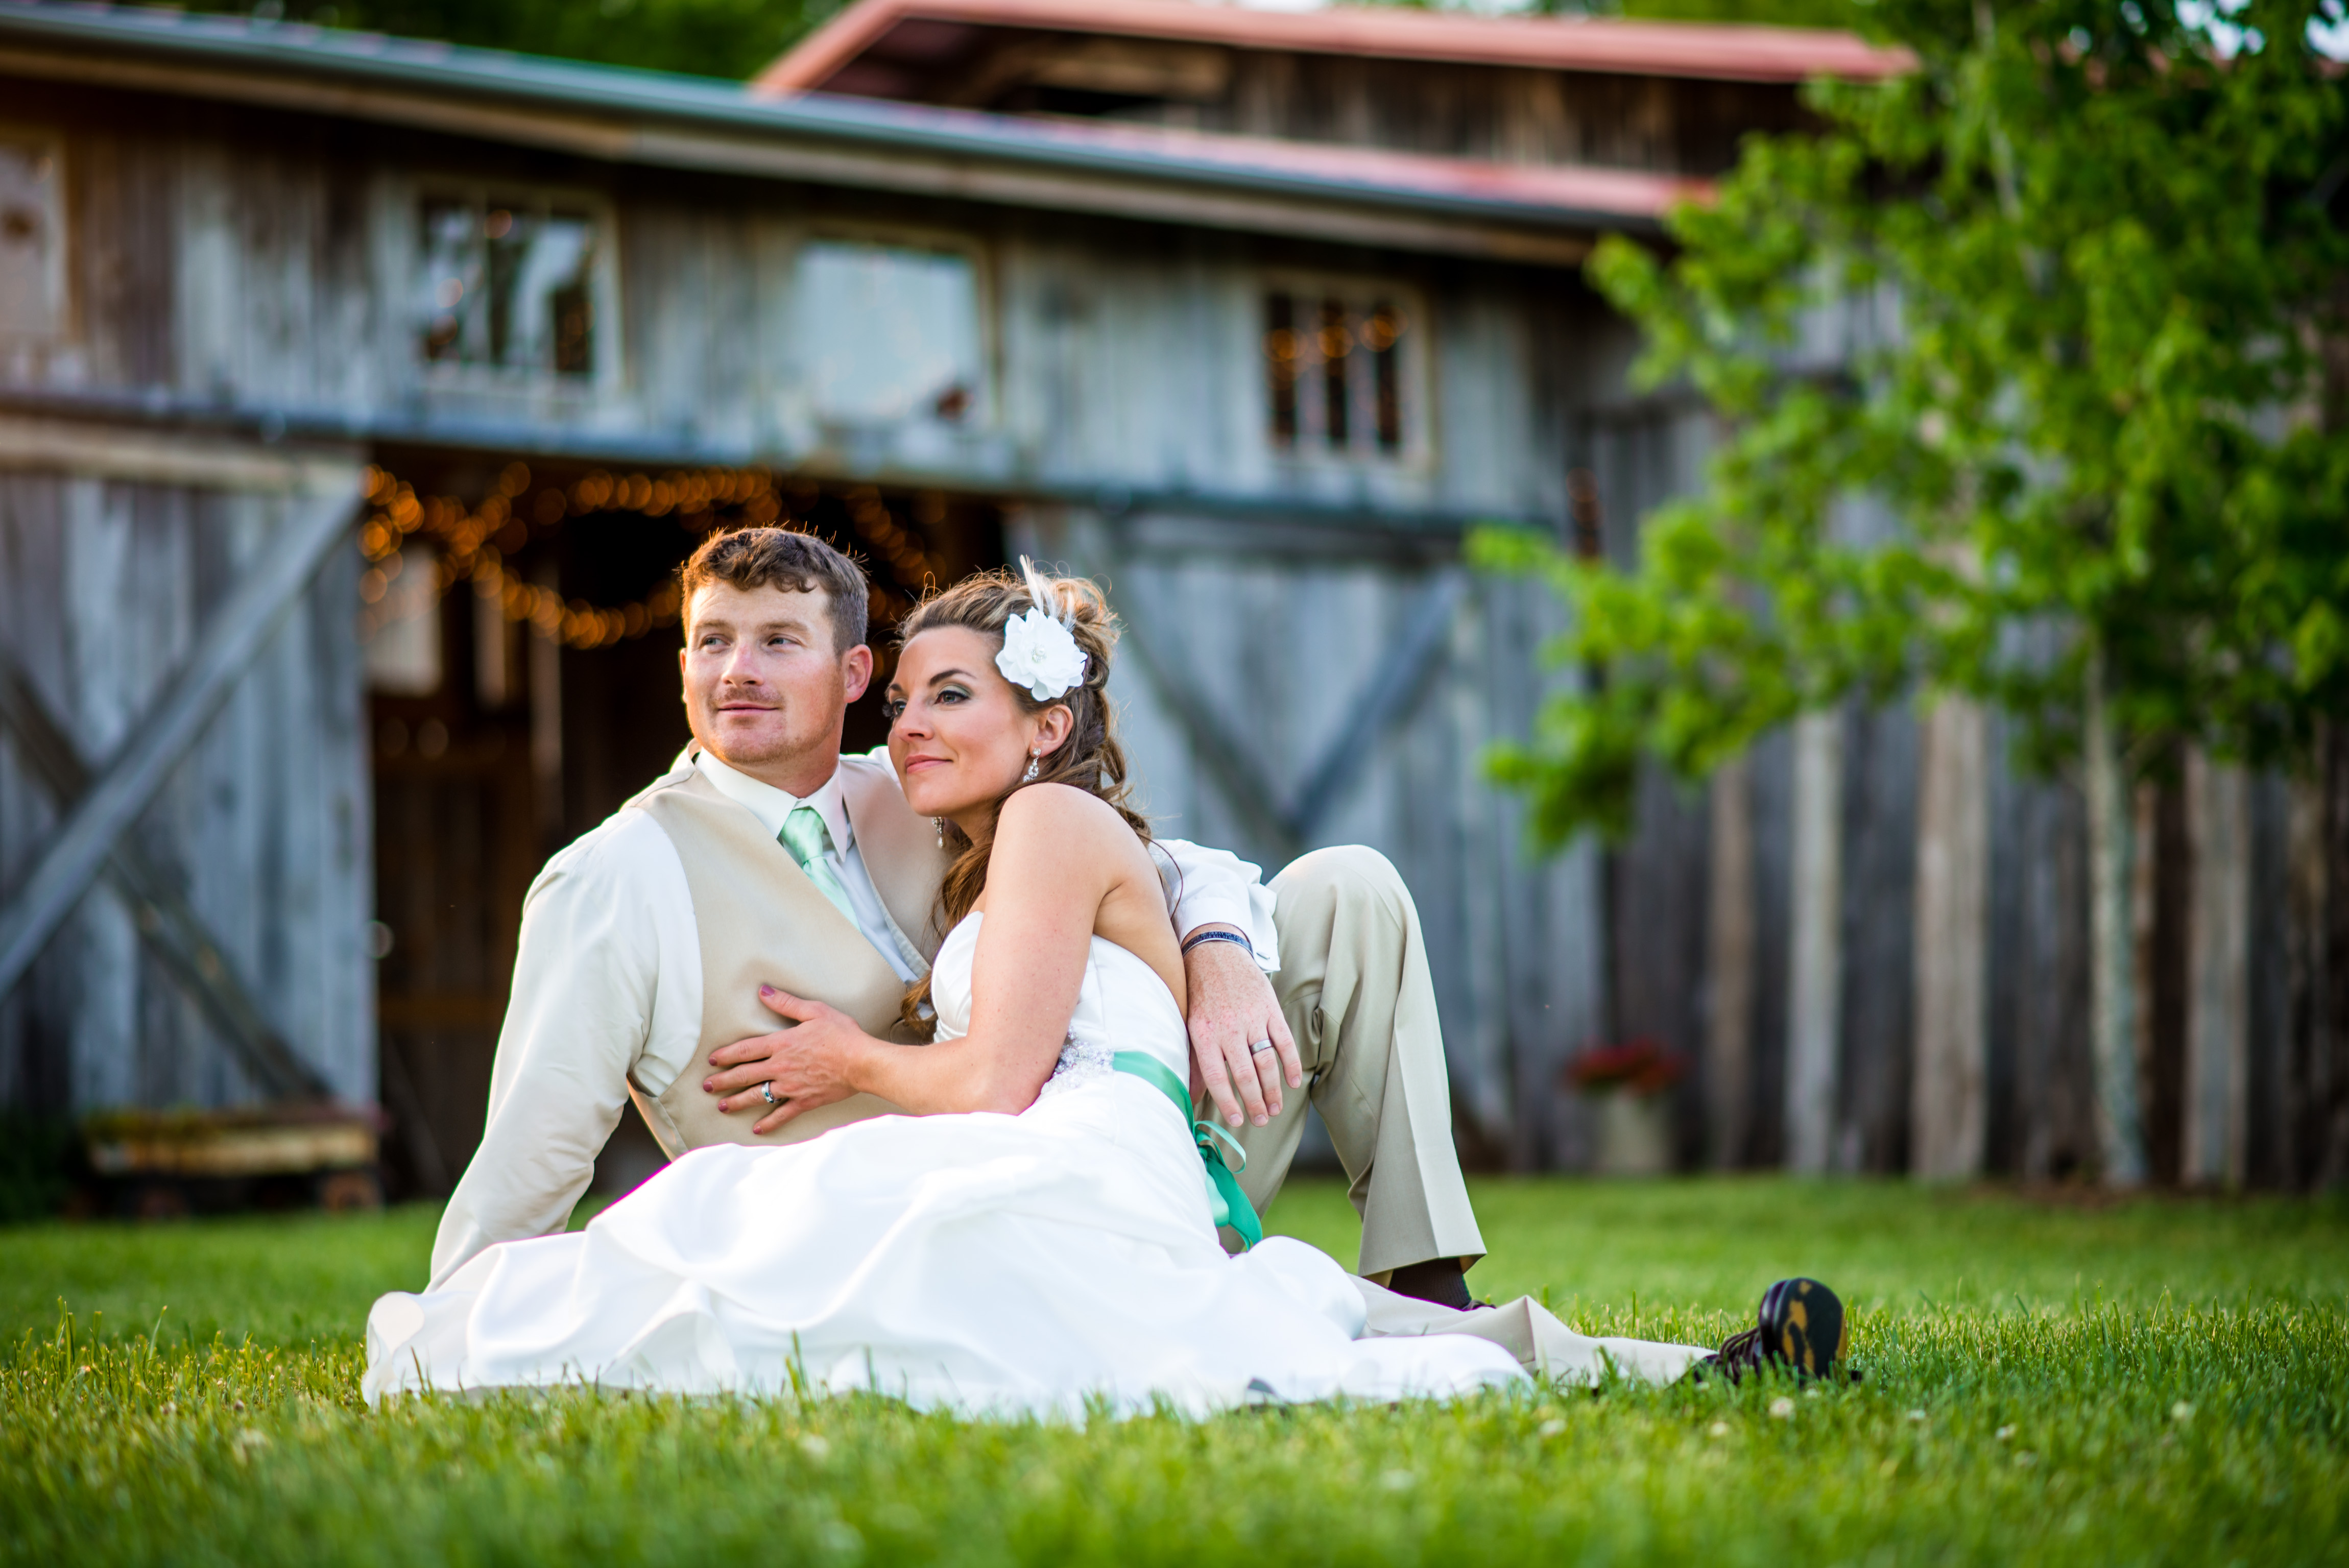 Chattanooga Wedding Photographers at the Barn at High Point Farms